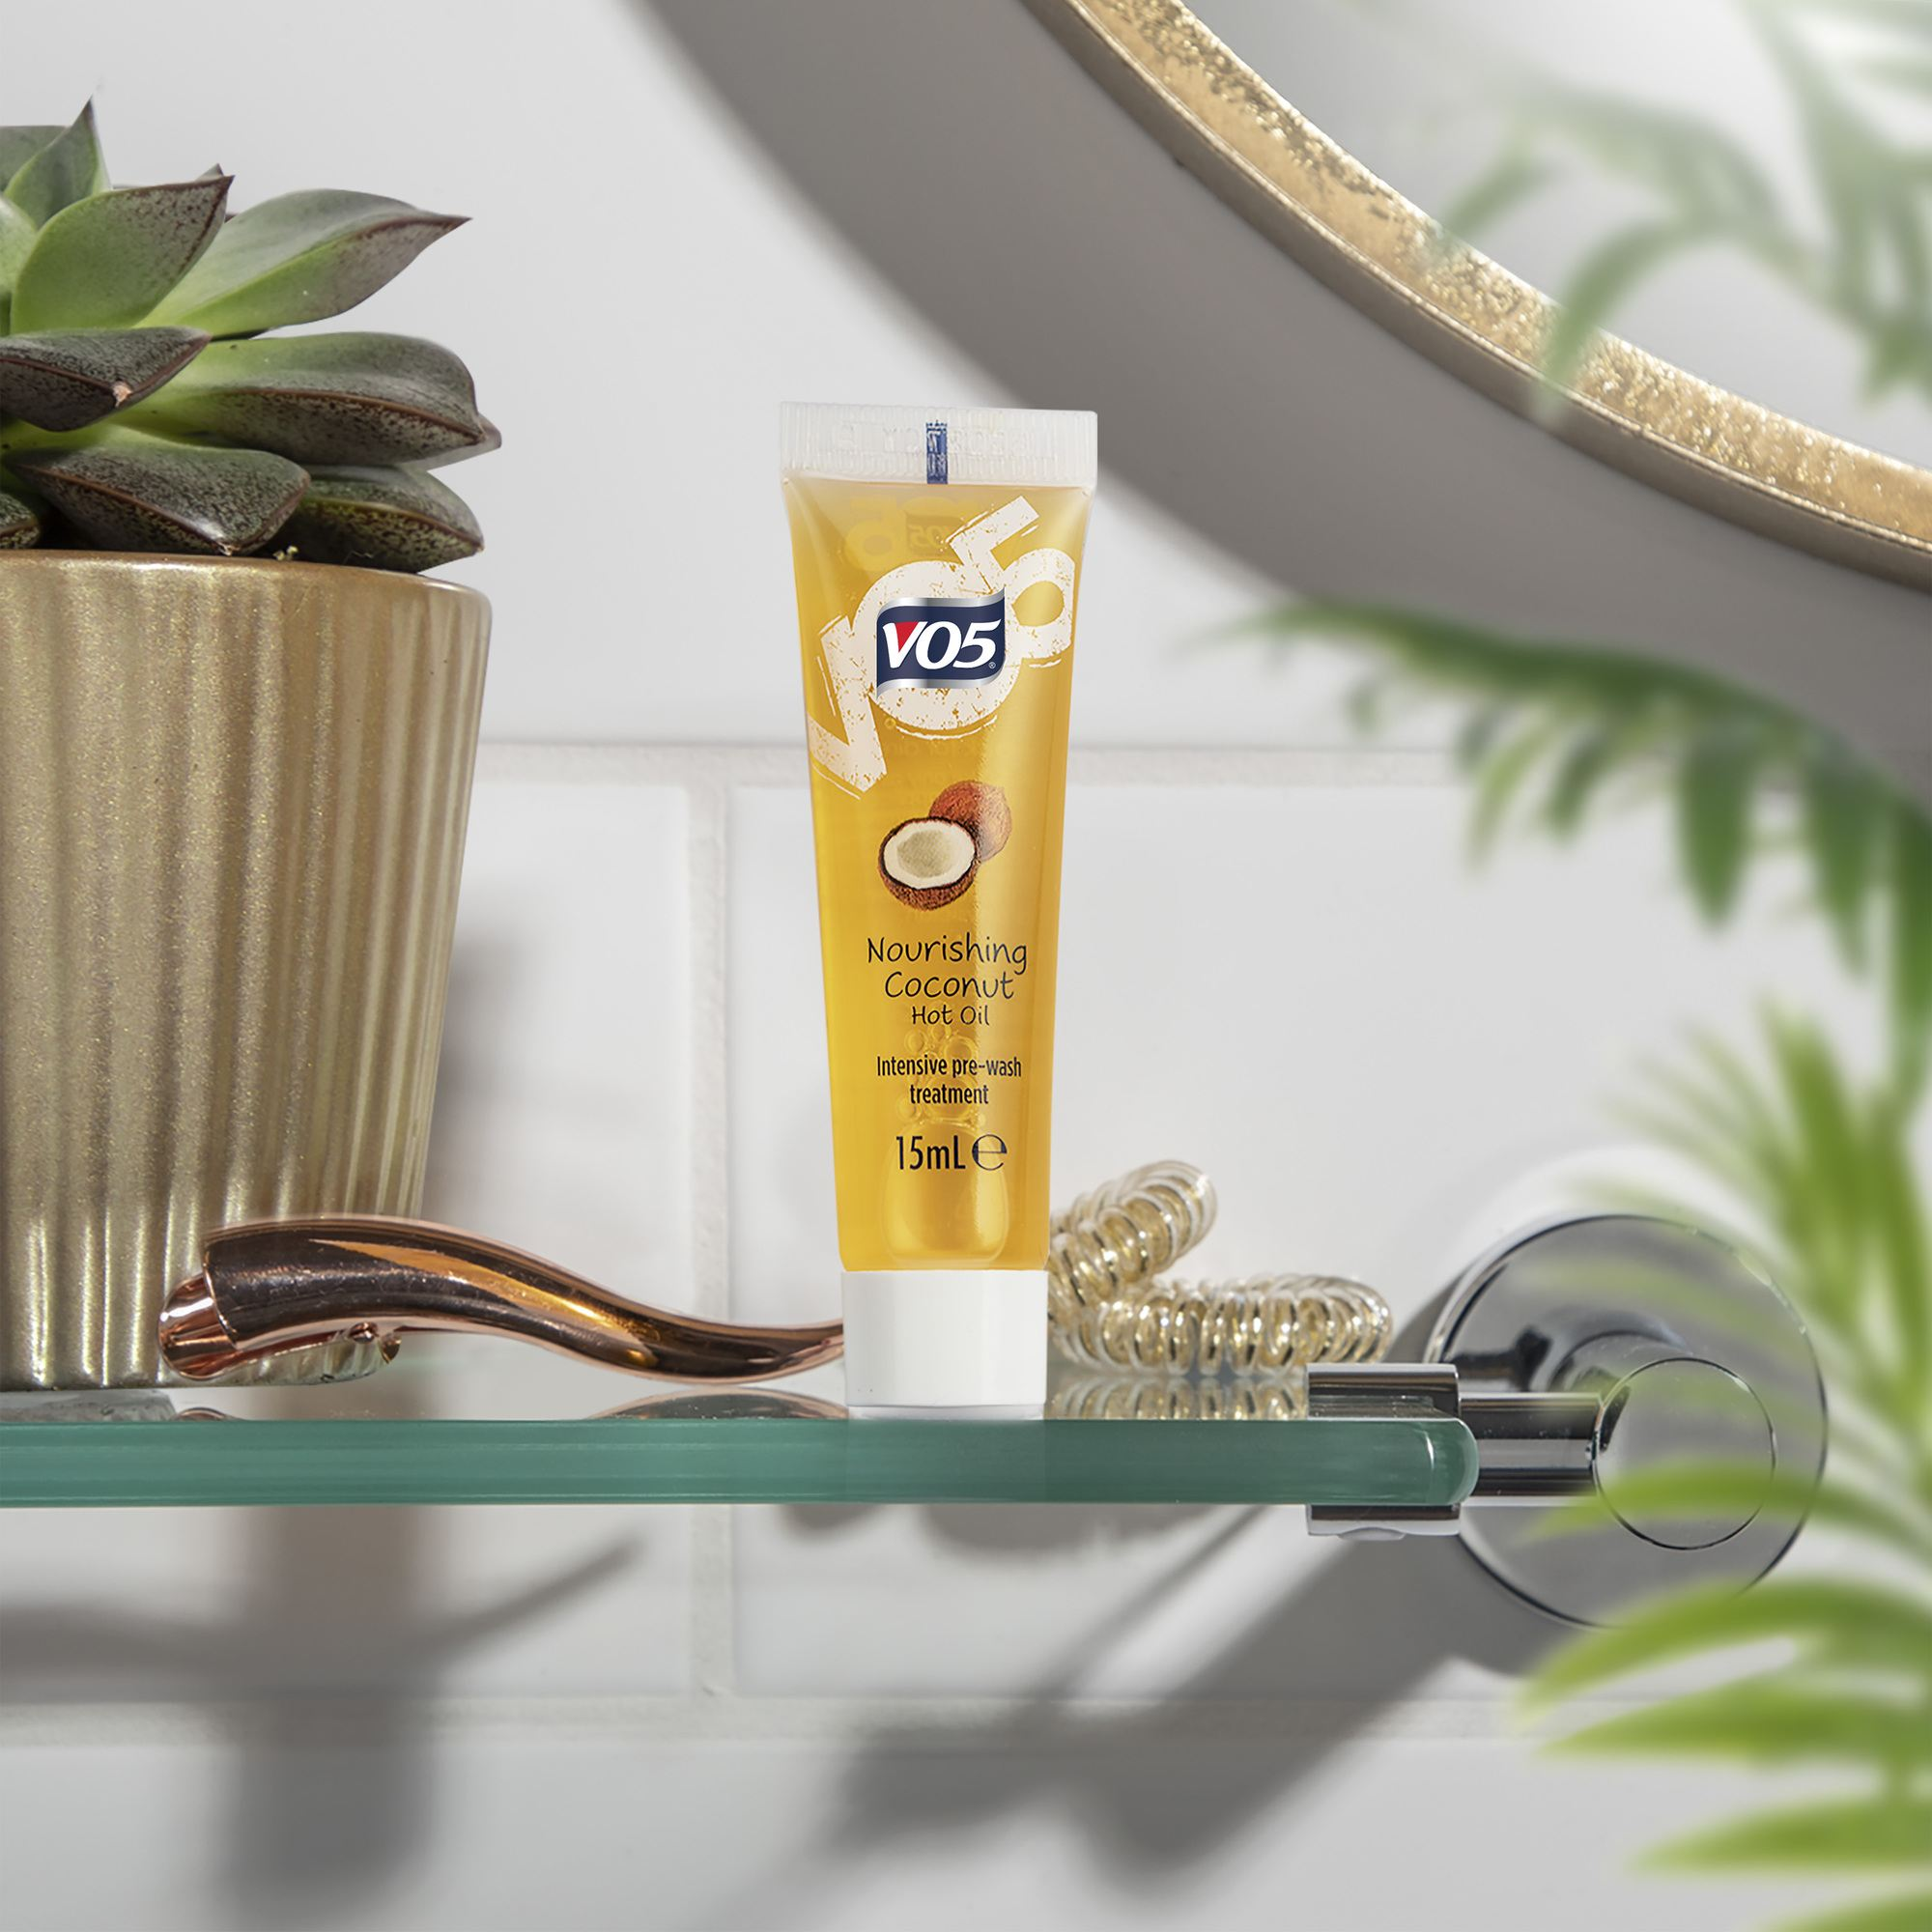 Hot oil treatments: Shot of the VO5 Nourishing Coconut Oil in a bathroom, with plants against white wall